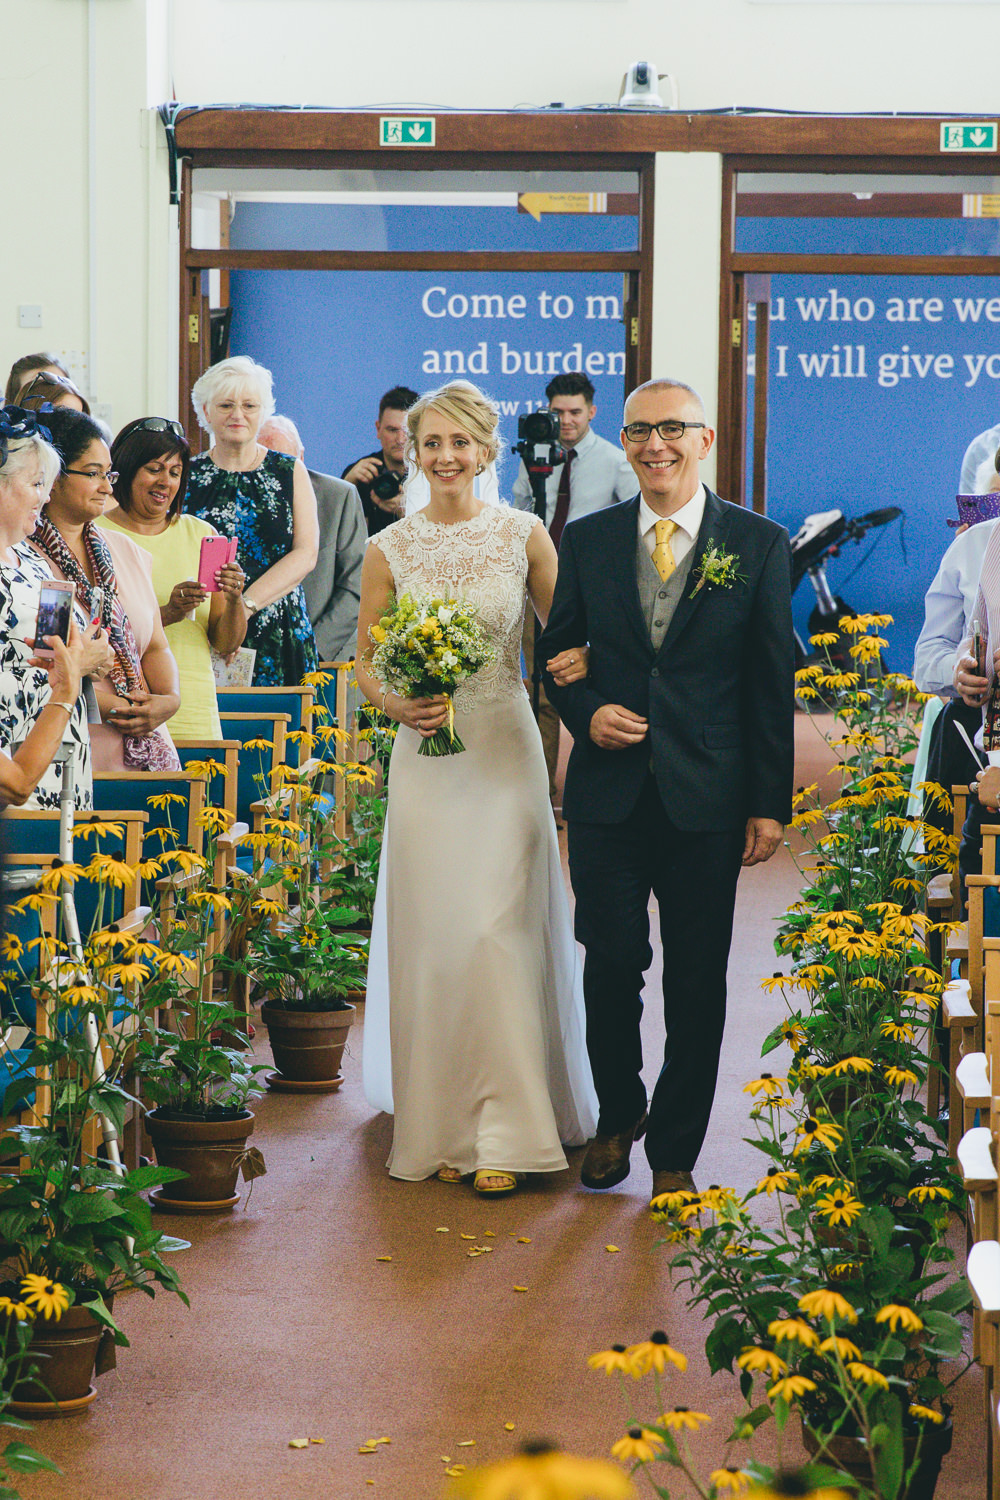 Bunting Yellow Flowers Aisle Ceremony Damerham Village Hall Wedding Lisa-Marie Halliday Photography